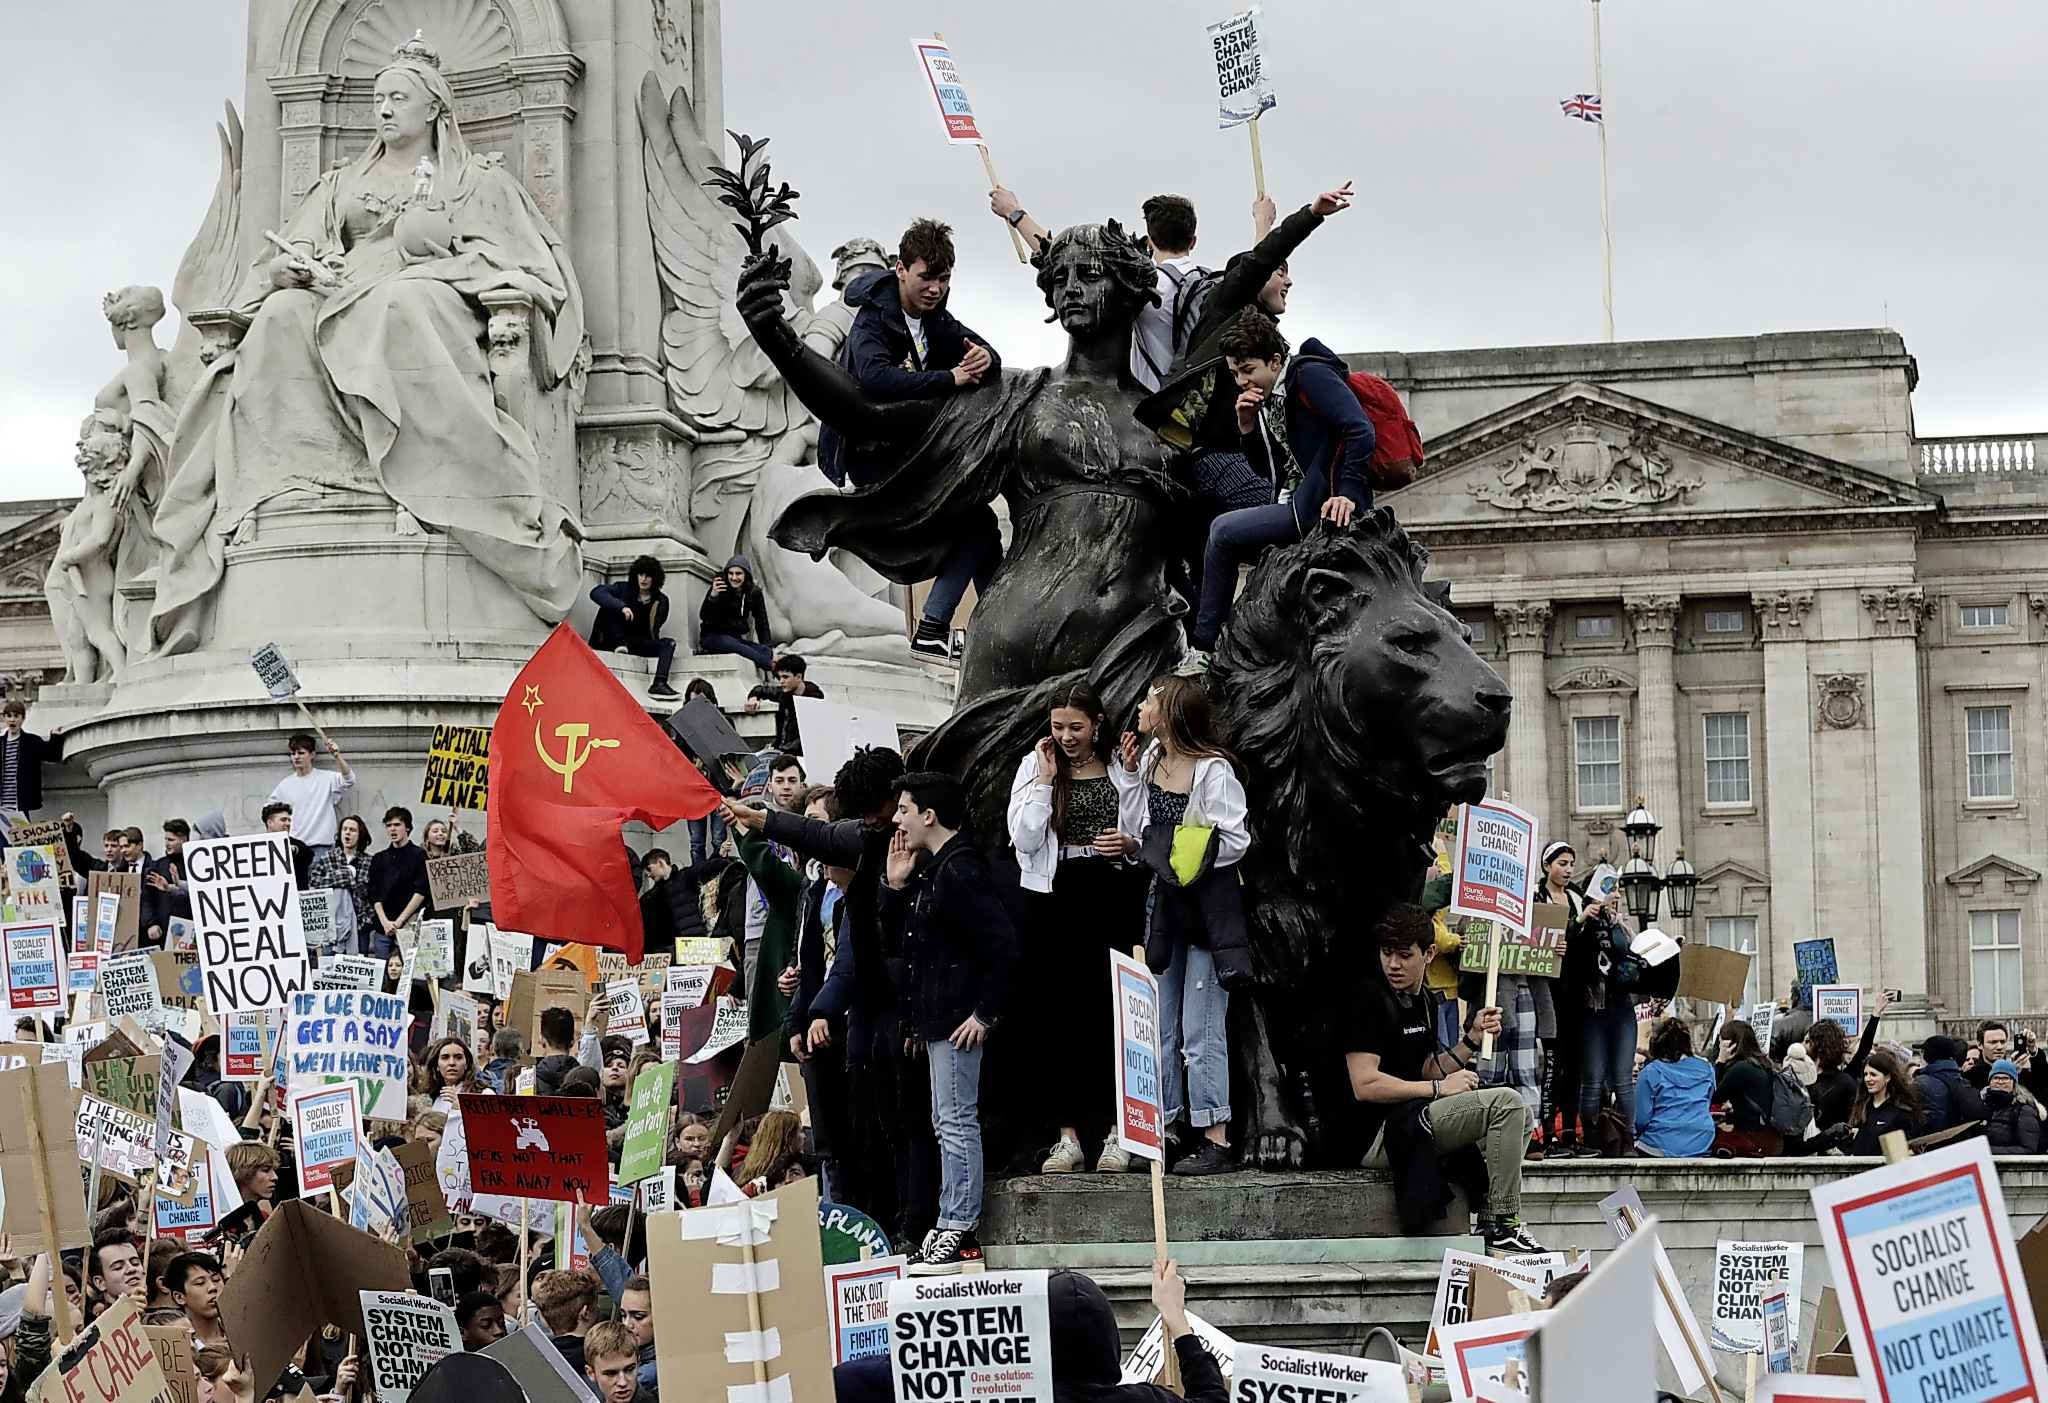 Youngsters stand on the Queen Victoria Memorial outside Buckingham Palace as they take part in a worldwide student climate protest in London, England on March 15 (Matt Dunham / The Associated Press files)